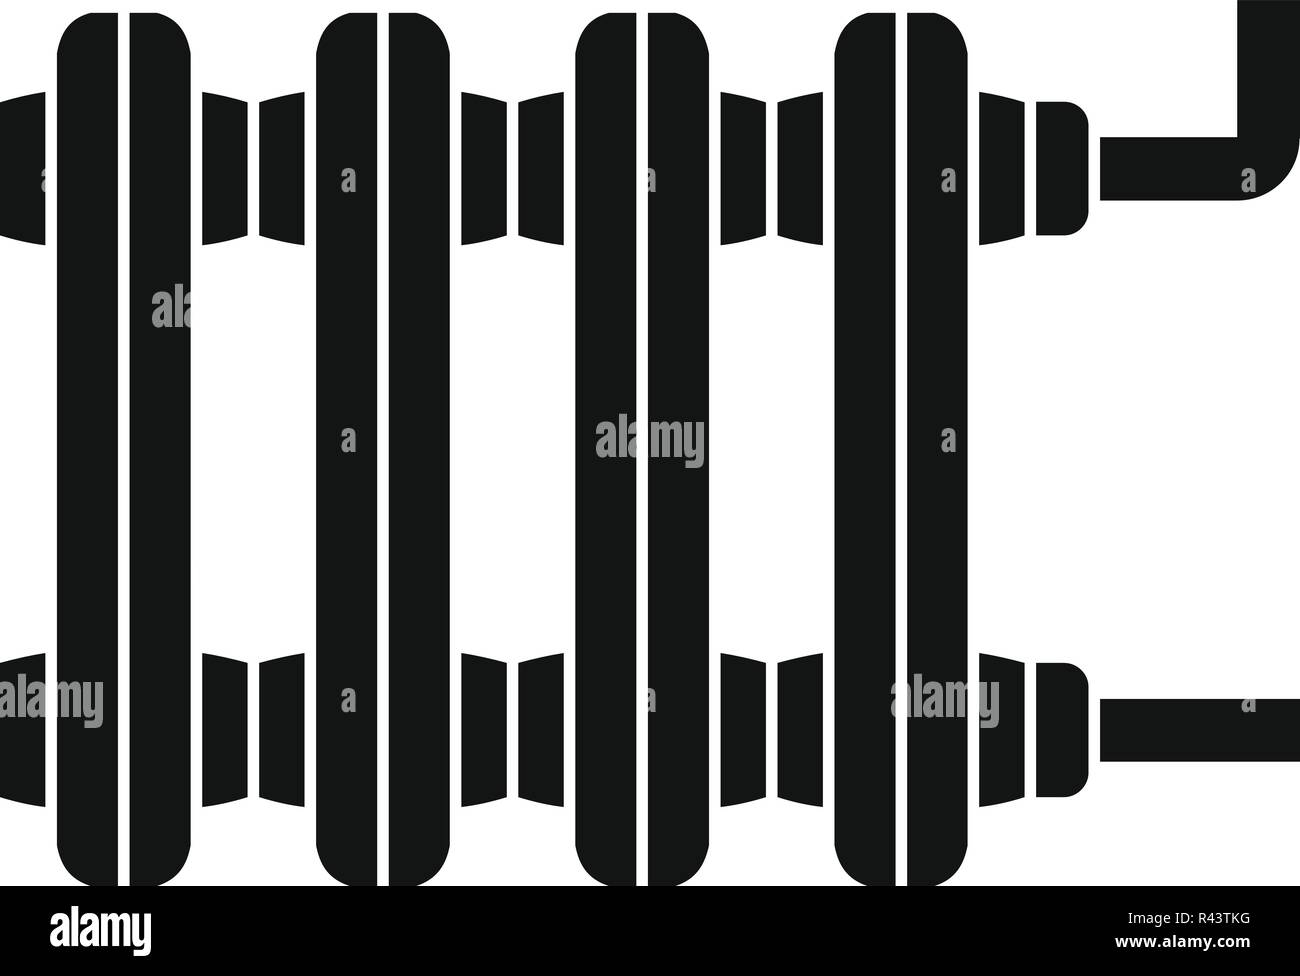 Old Home Radiator Icon Simple Illustration Of Old Home Radiator Vector Icon For Web Design Isolated On White Background Stock Vector Image Art Alamy